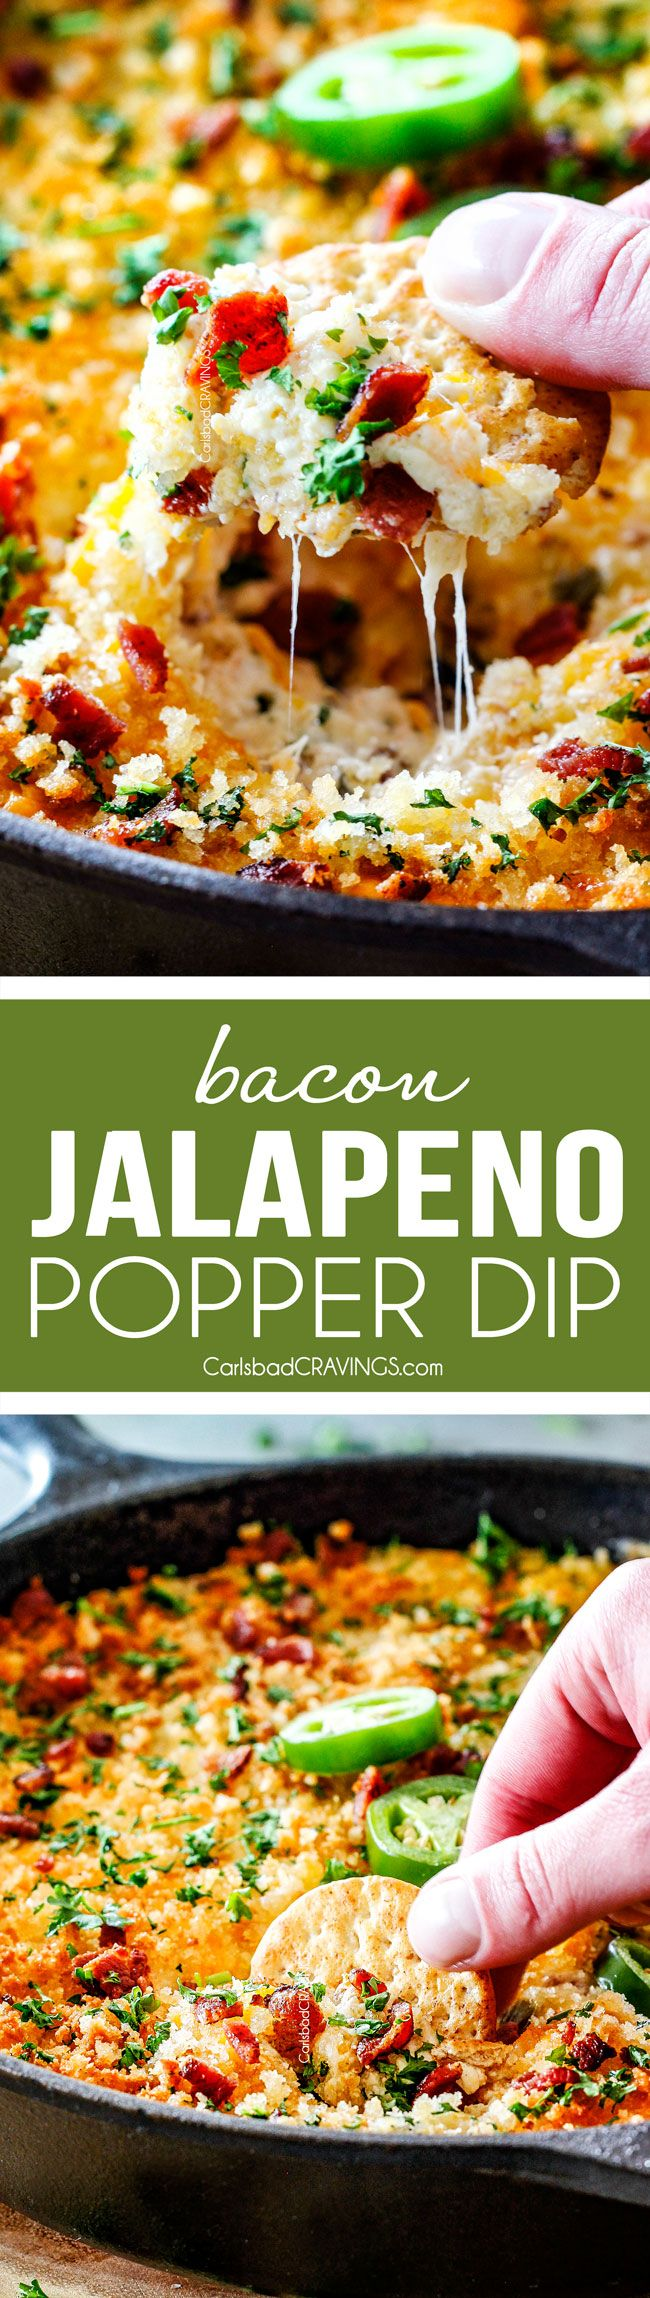 This quick and easy Jalapeno Popper Dip with Bacon tastes like your favorite appetizer in EASY, warm, creamy, cheesy addicting dip form!  It is my go-to party appetizer that everyone LOVES!!!  via @carlsbadcraving